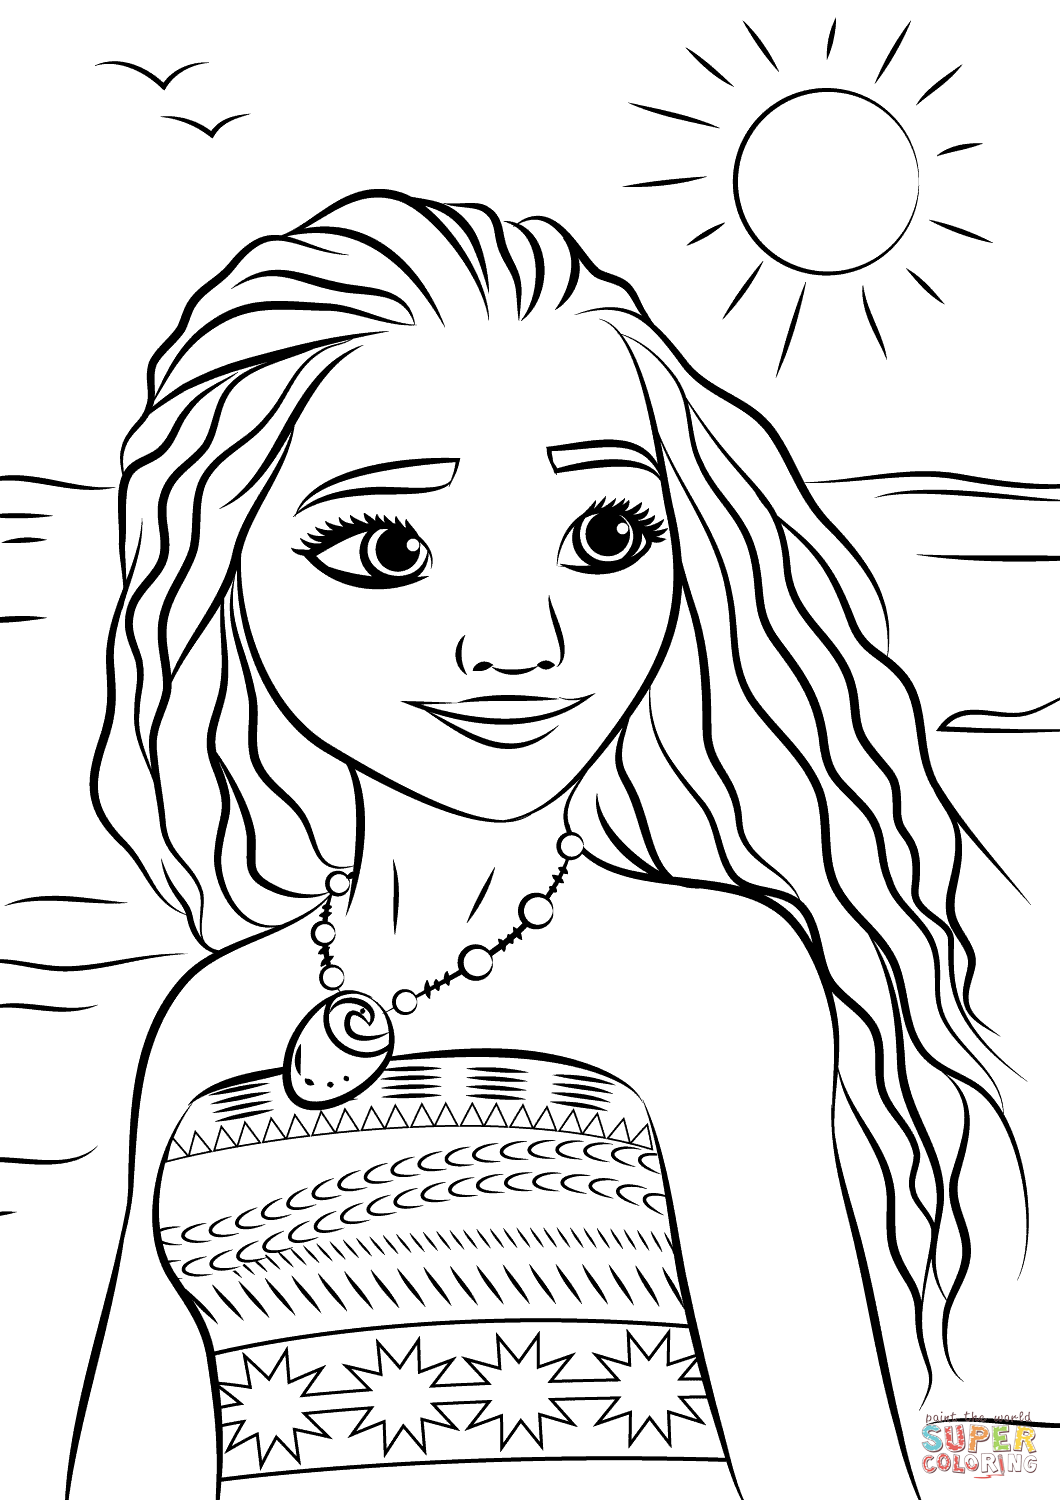 Princess Moana Portrait Coloring Page Free Printable Coloring Pages